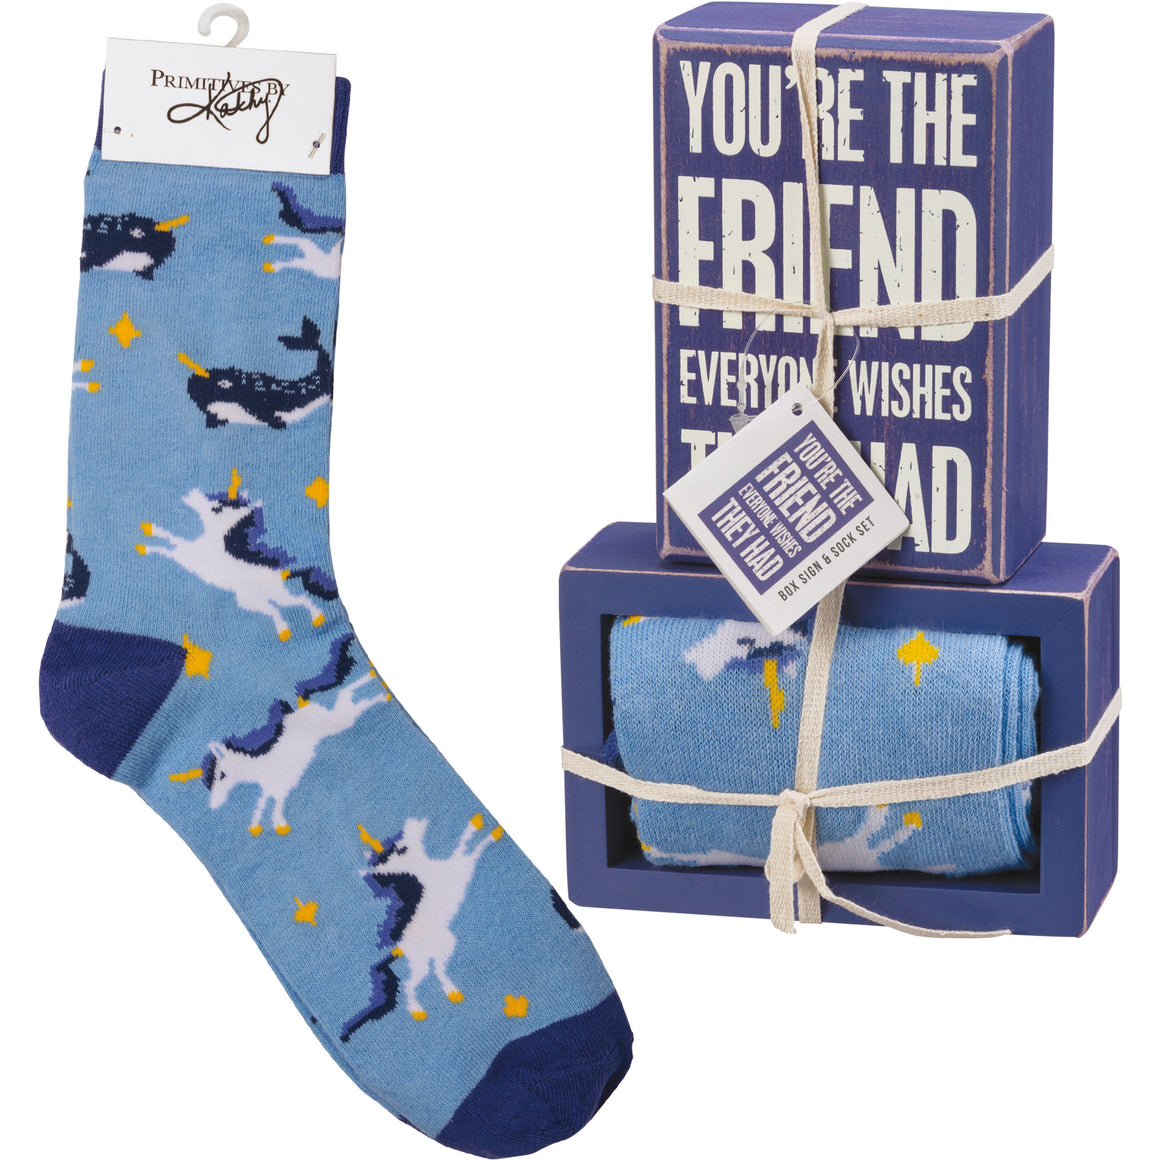 You're The Friend Socks & Box Sign Gift Set